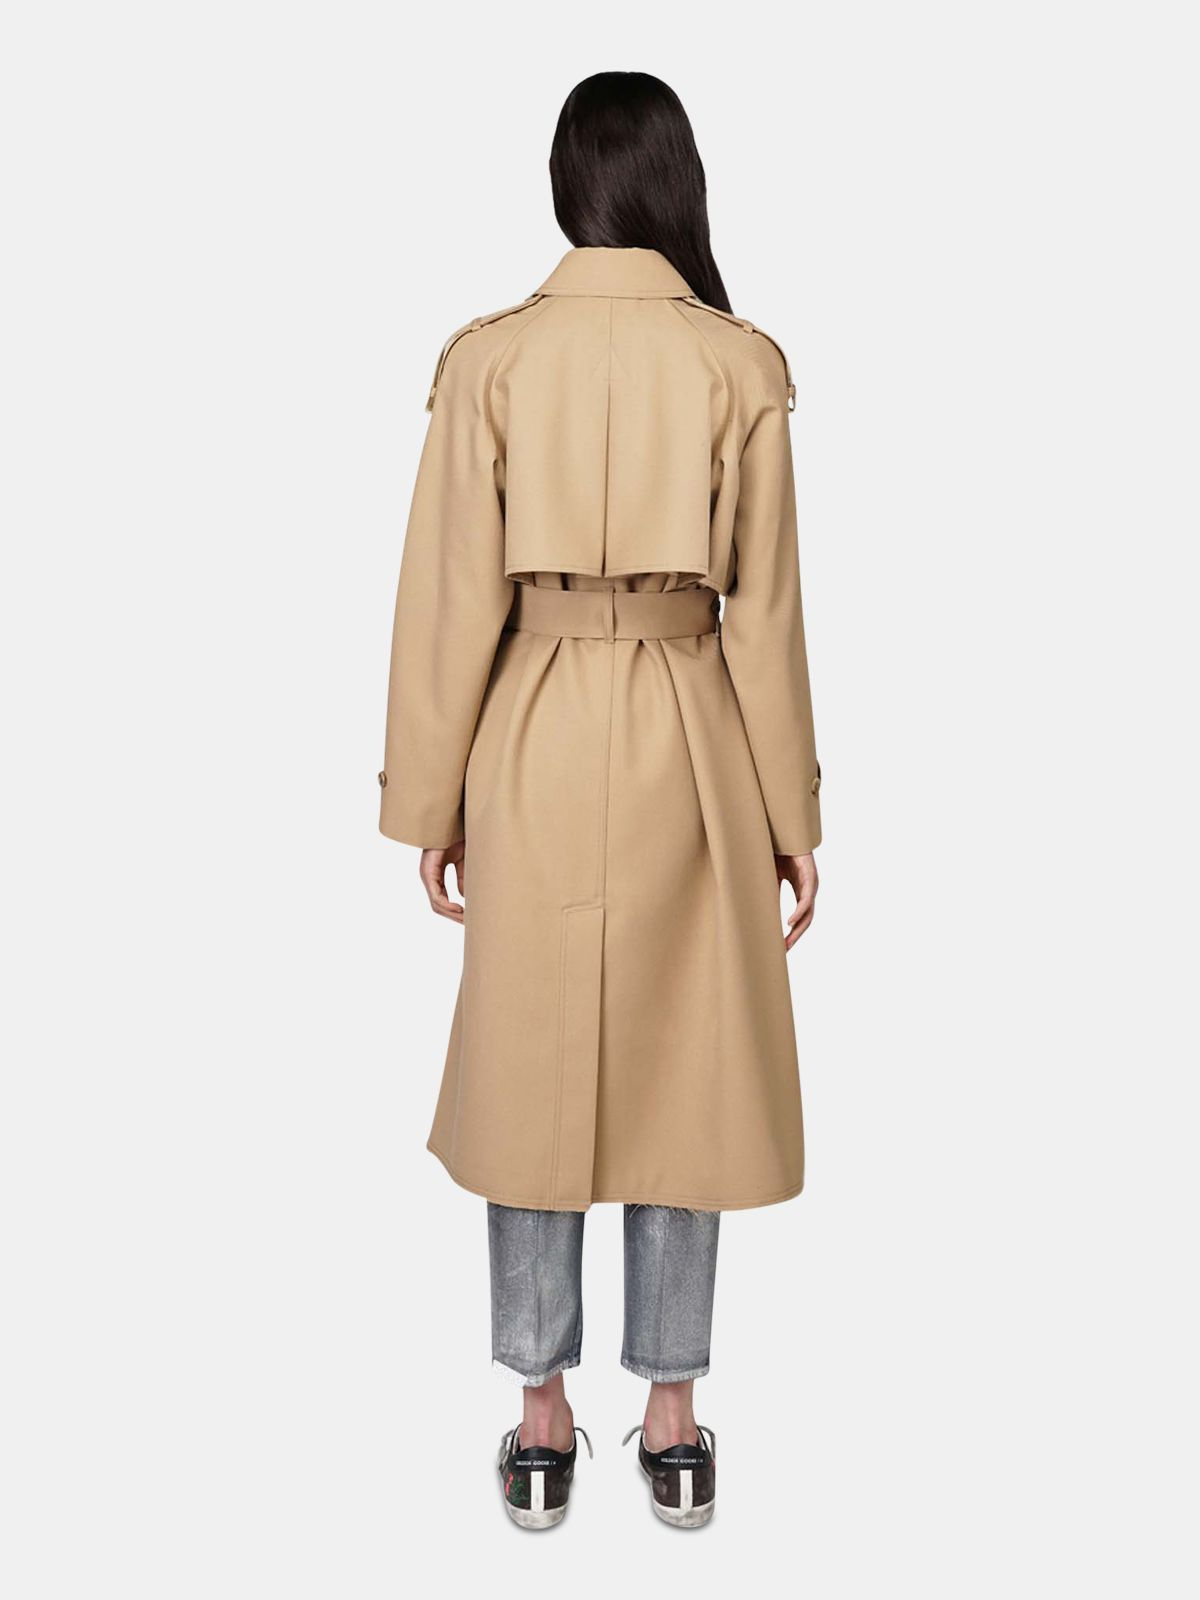 Golden Goose - Trench Serenity avec cordon coulissant style trekking   in